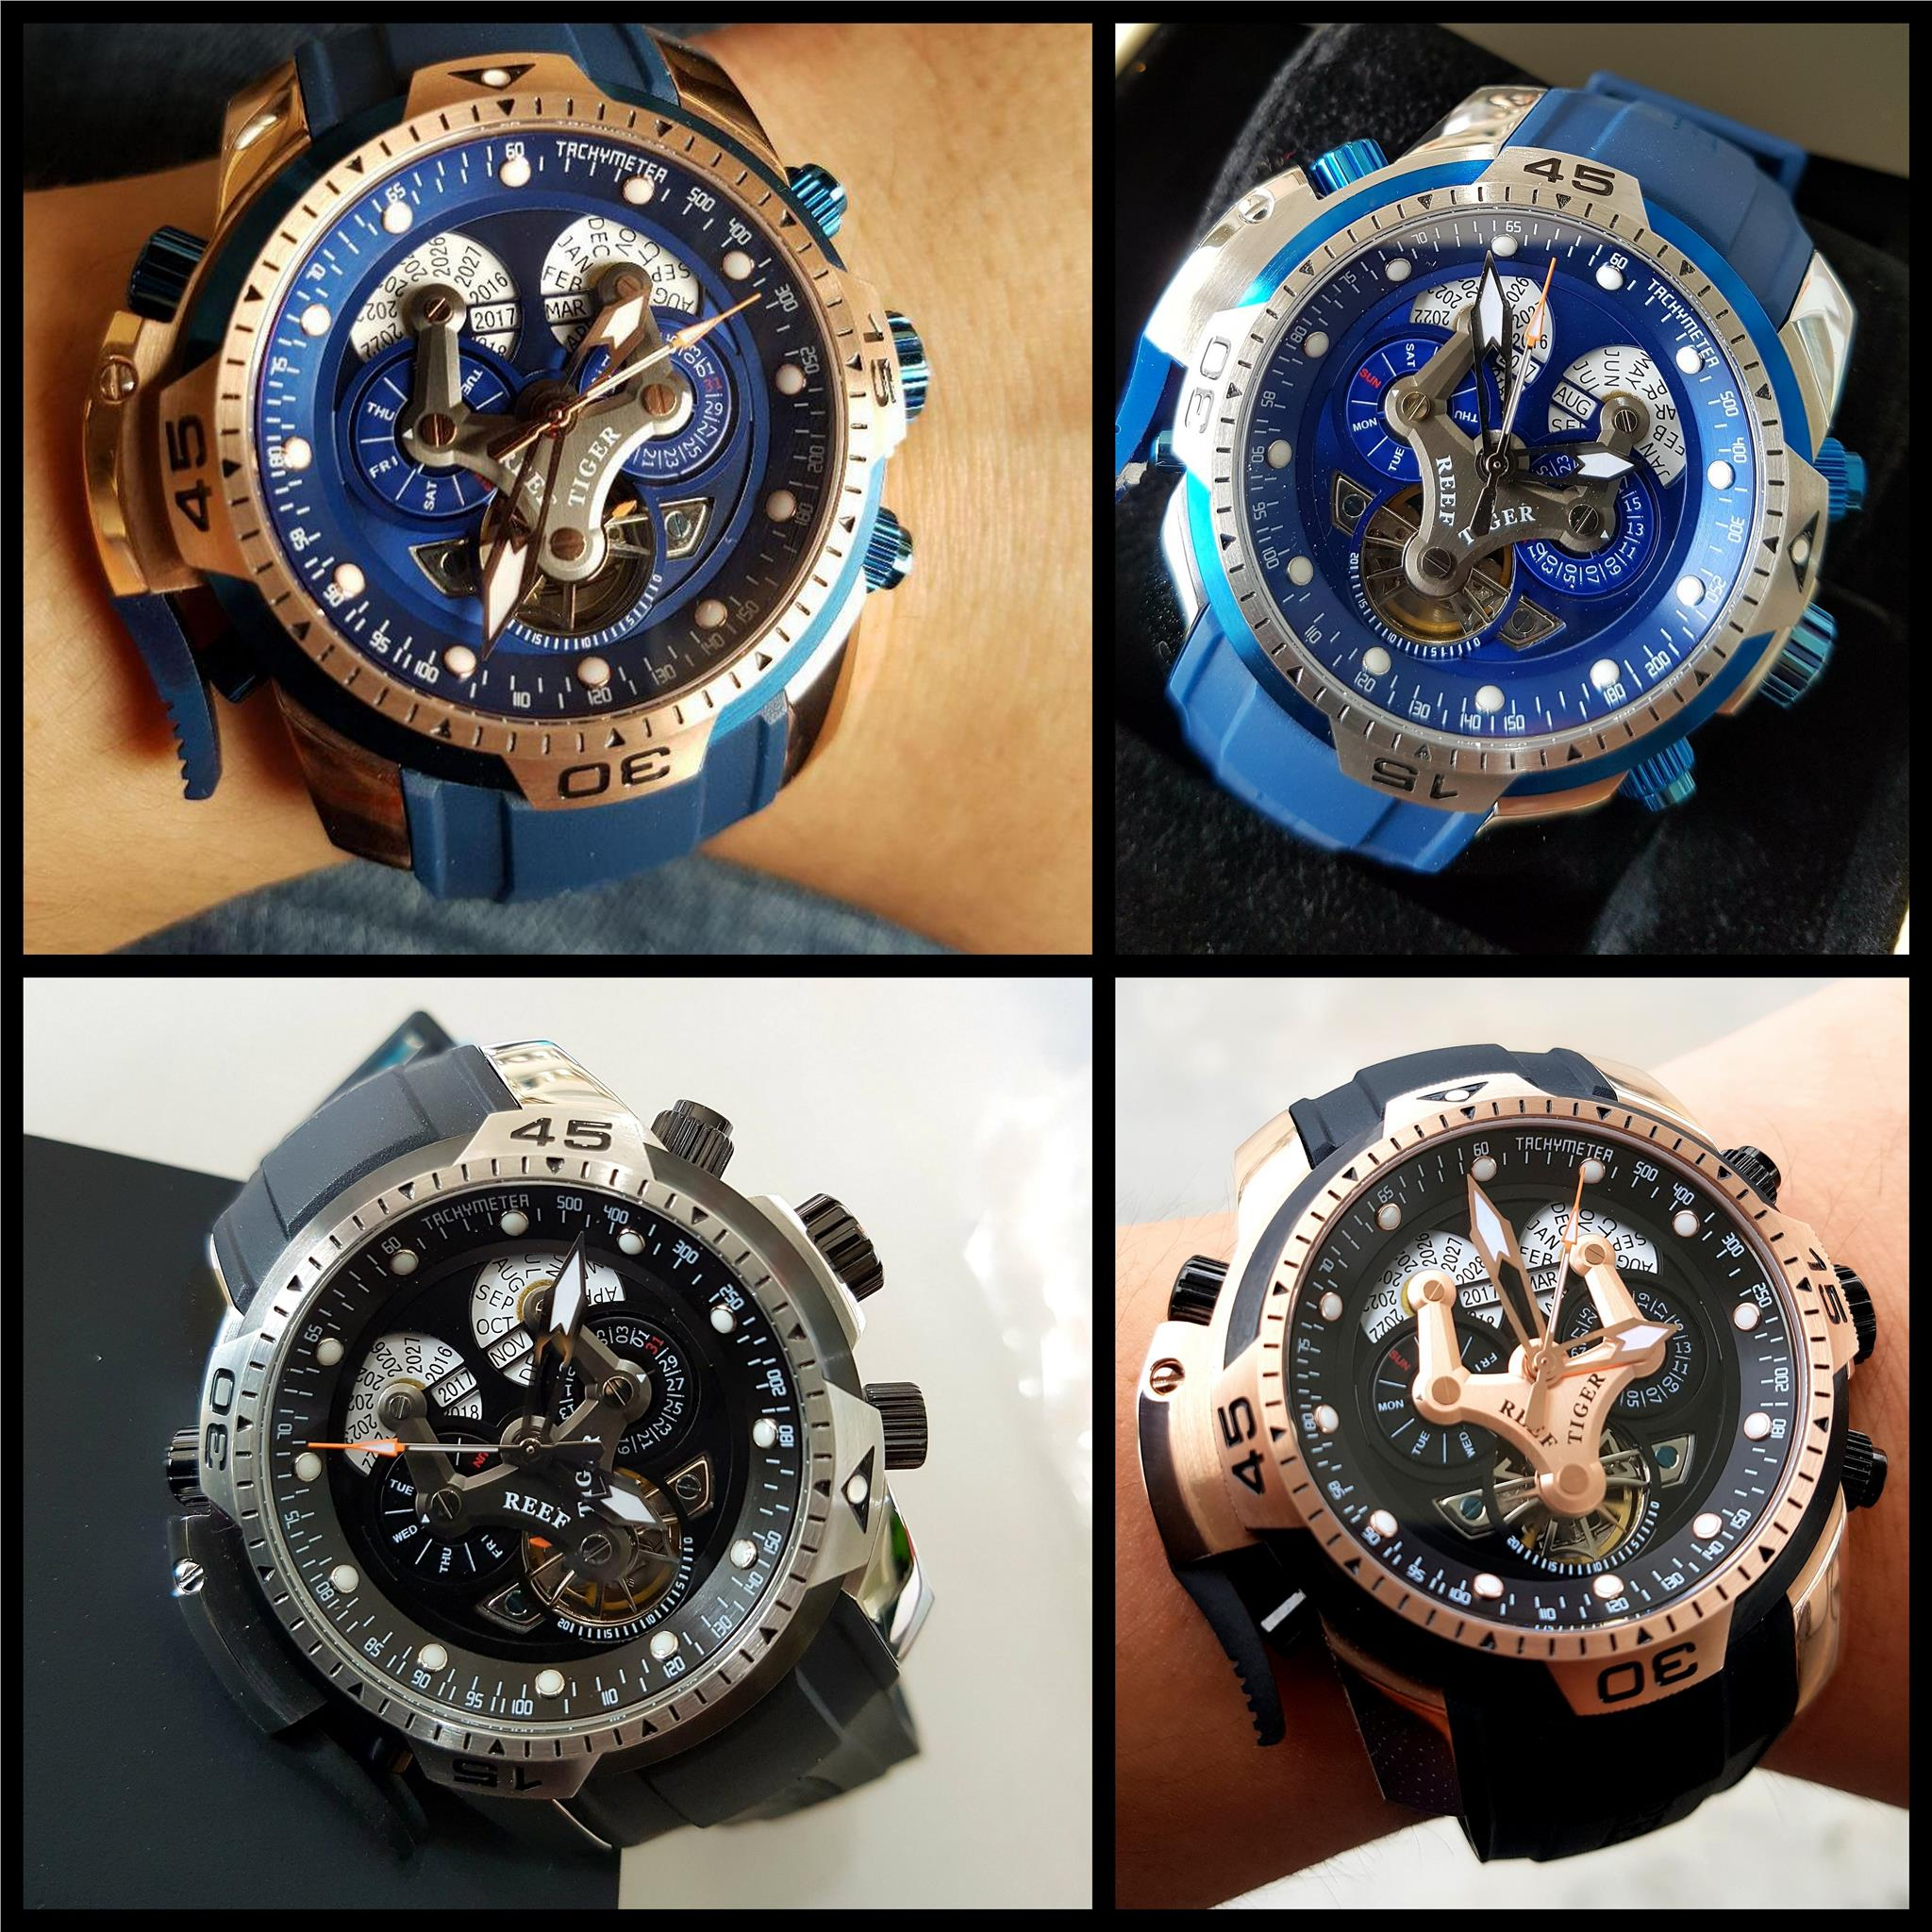 Reef Tiger Aurora Swiss Automatic Limited Edition